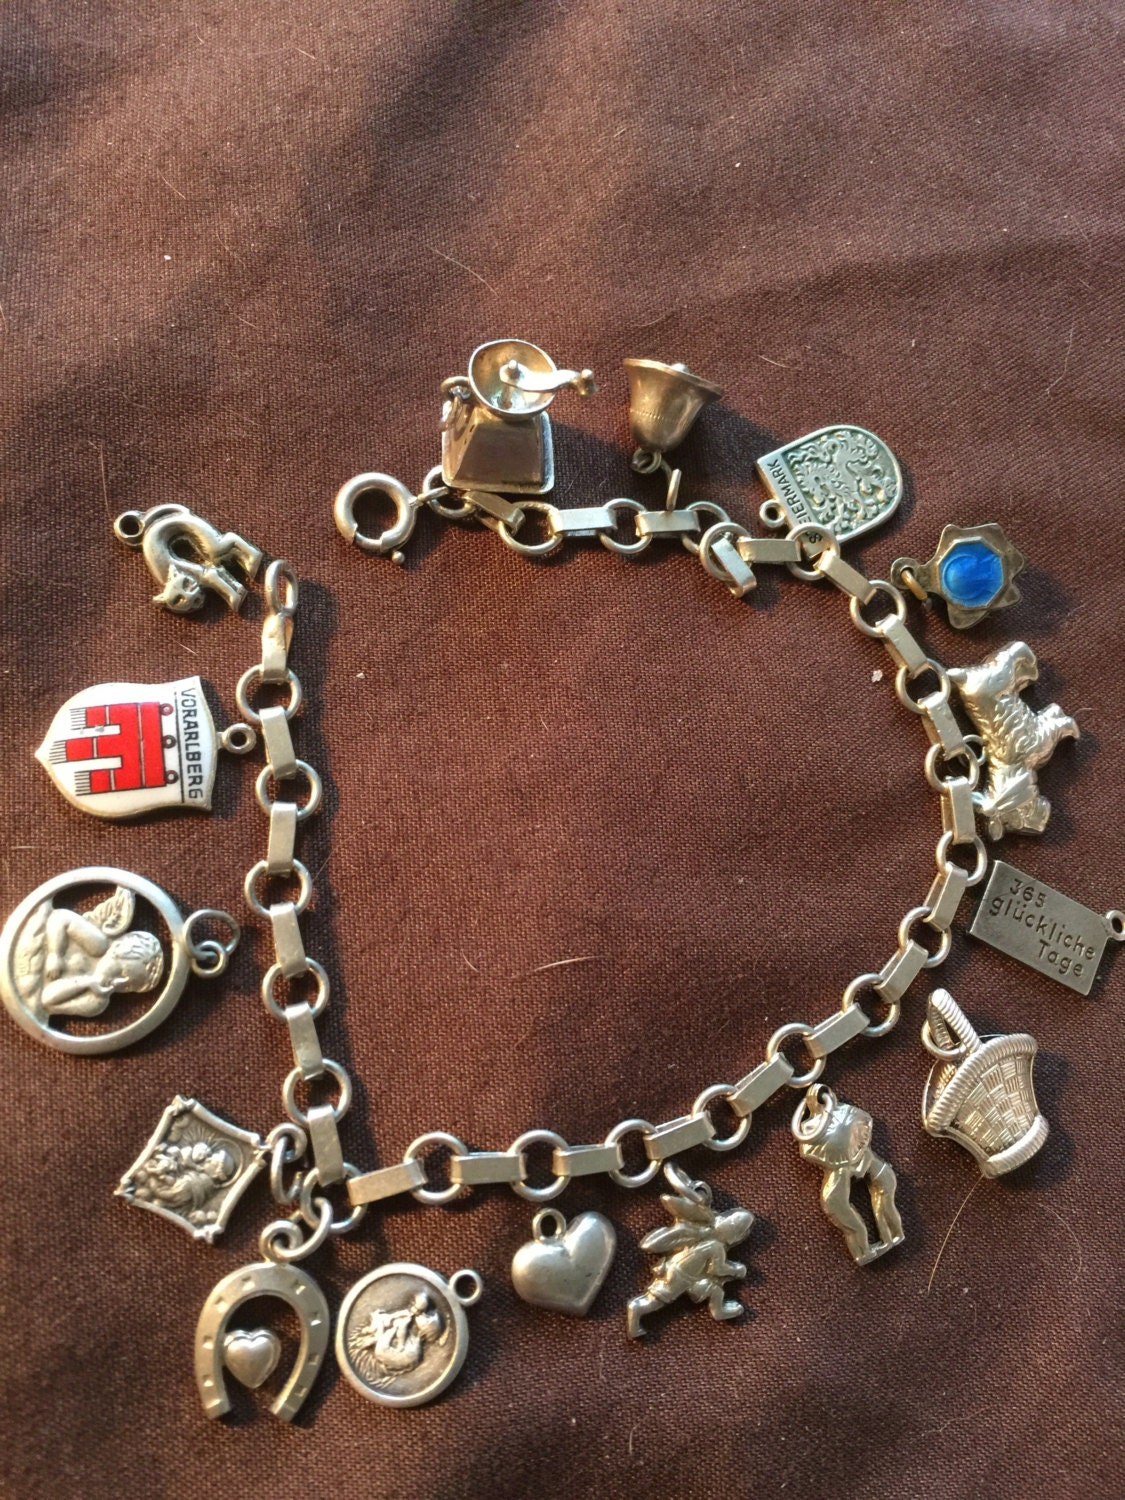 german vintage silver 800 835 charm bracelet with 16 charms